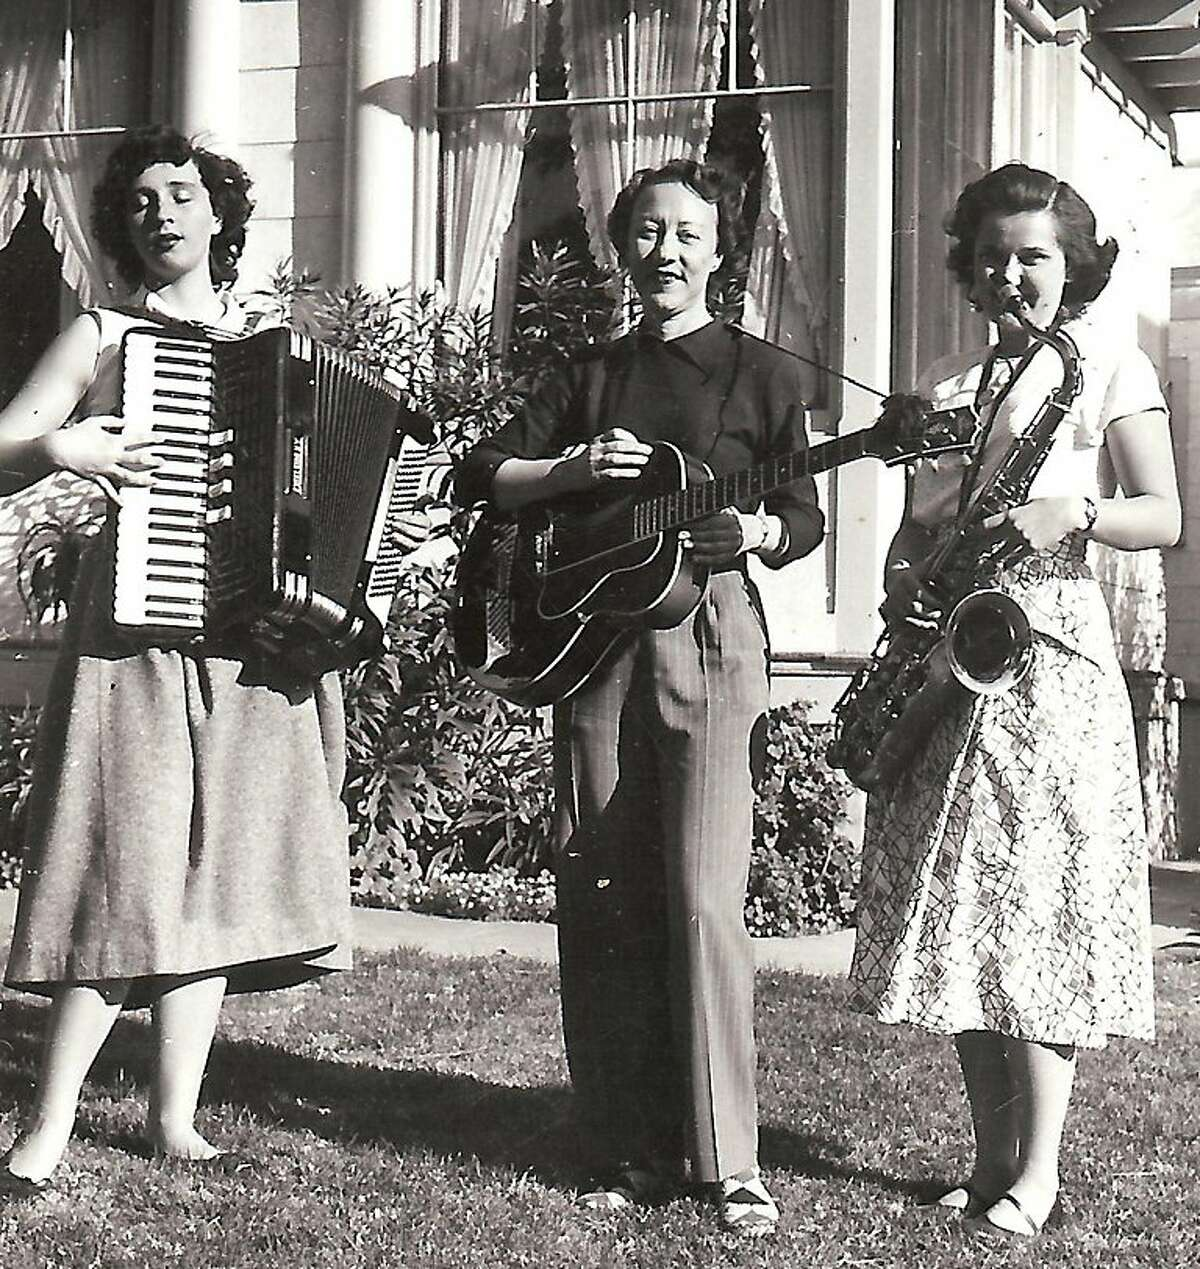 Evelyn Deane, right, had a vibrant career as a saxophonist before becoming a lawyer